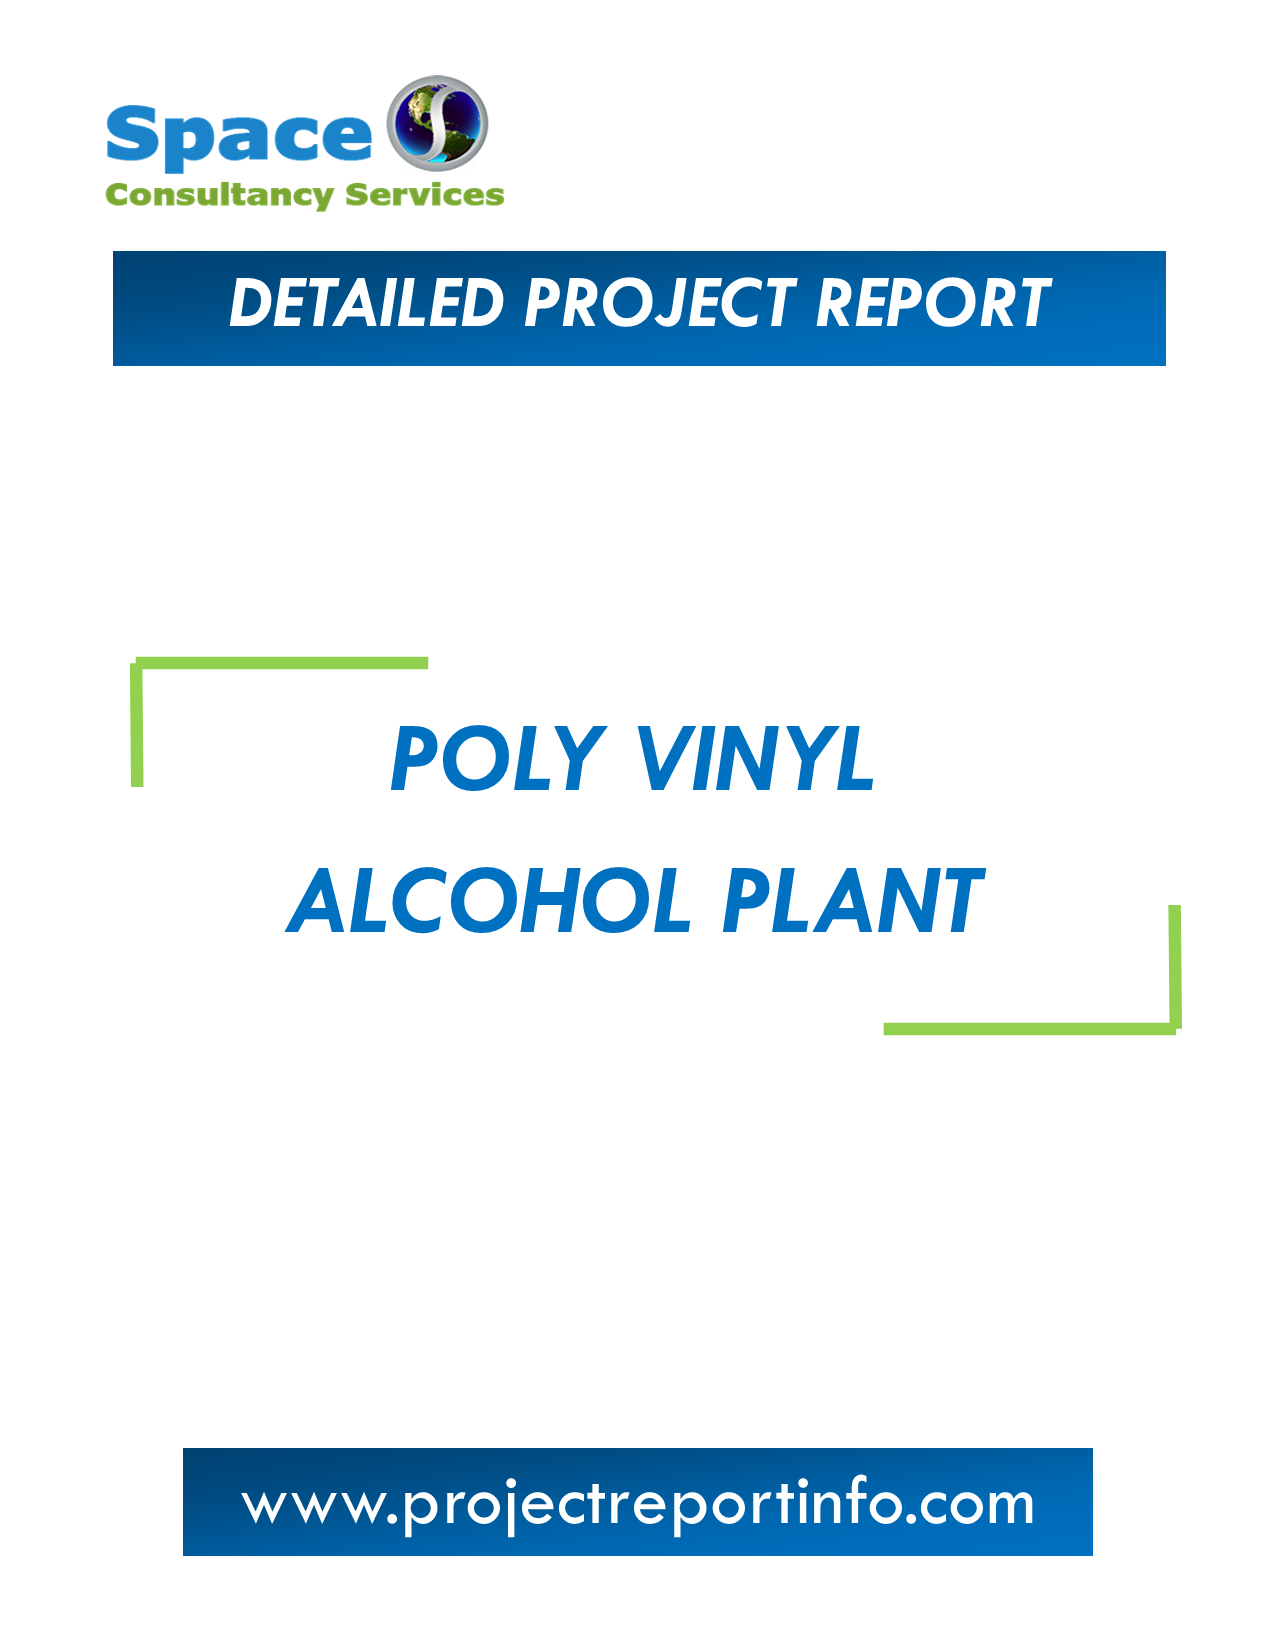 Project Report on Poly Vinyl Alcohol Plant